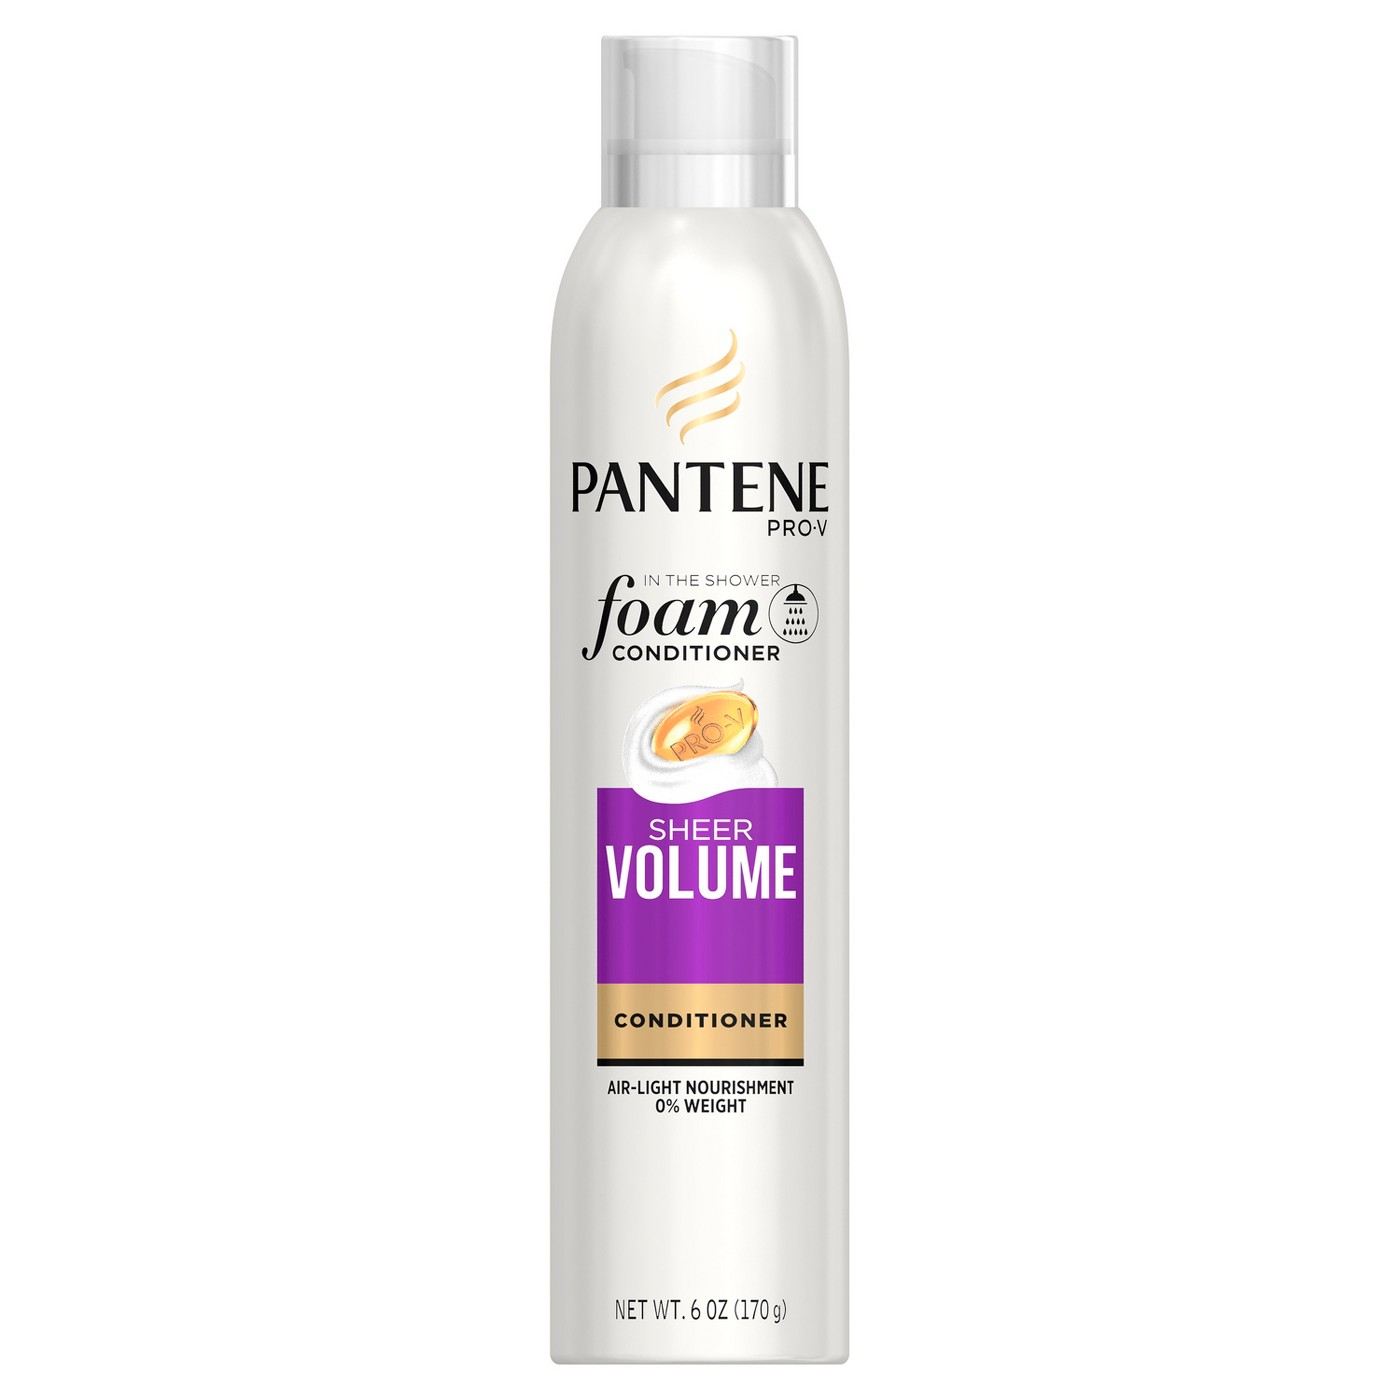 Pantene Sheer Volume Foam Conditioner